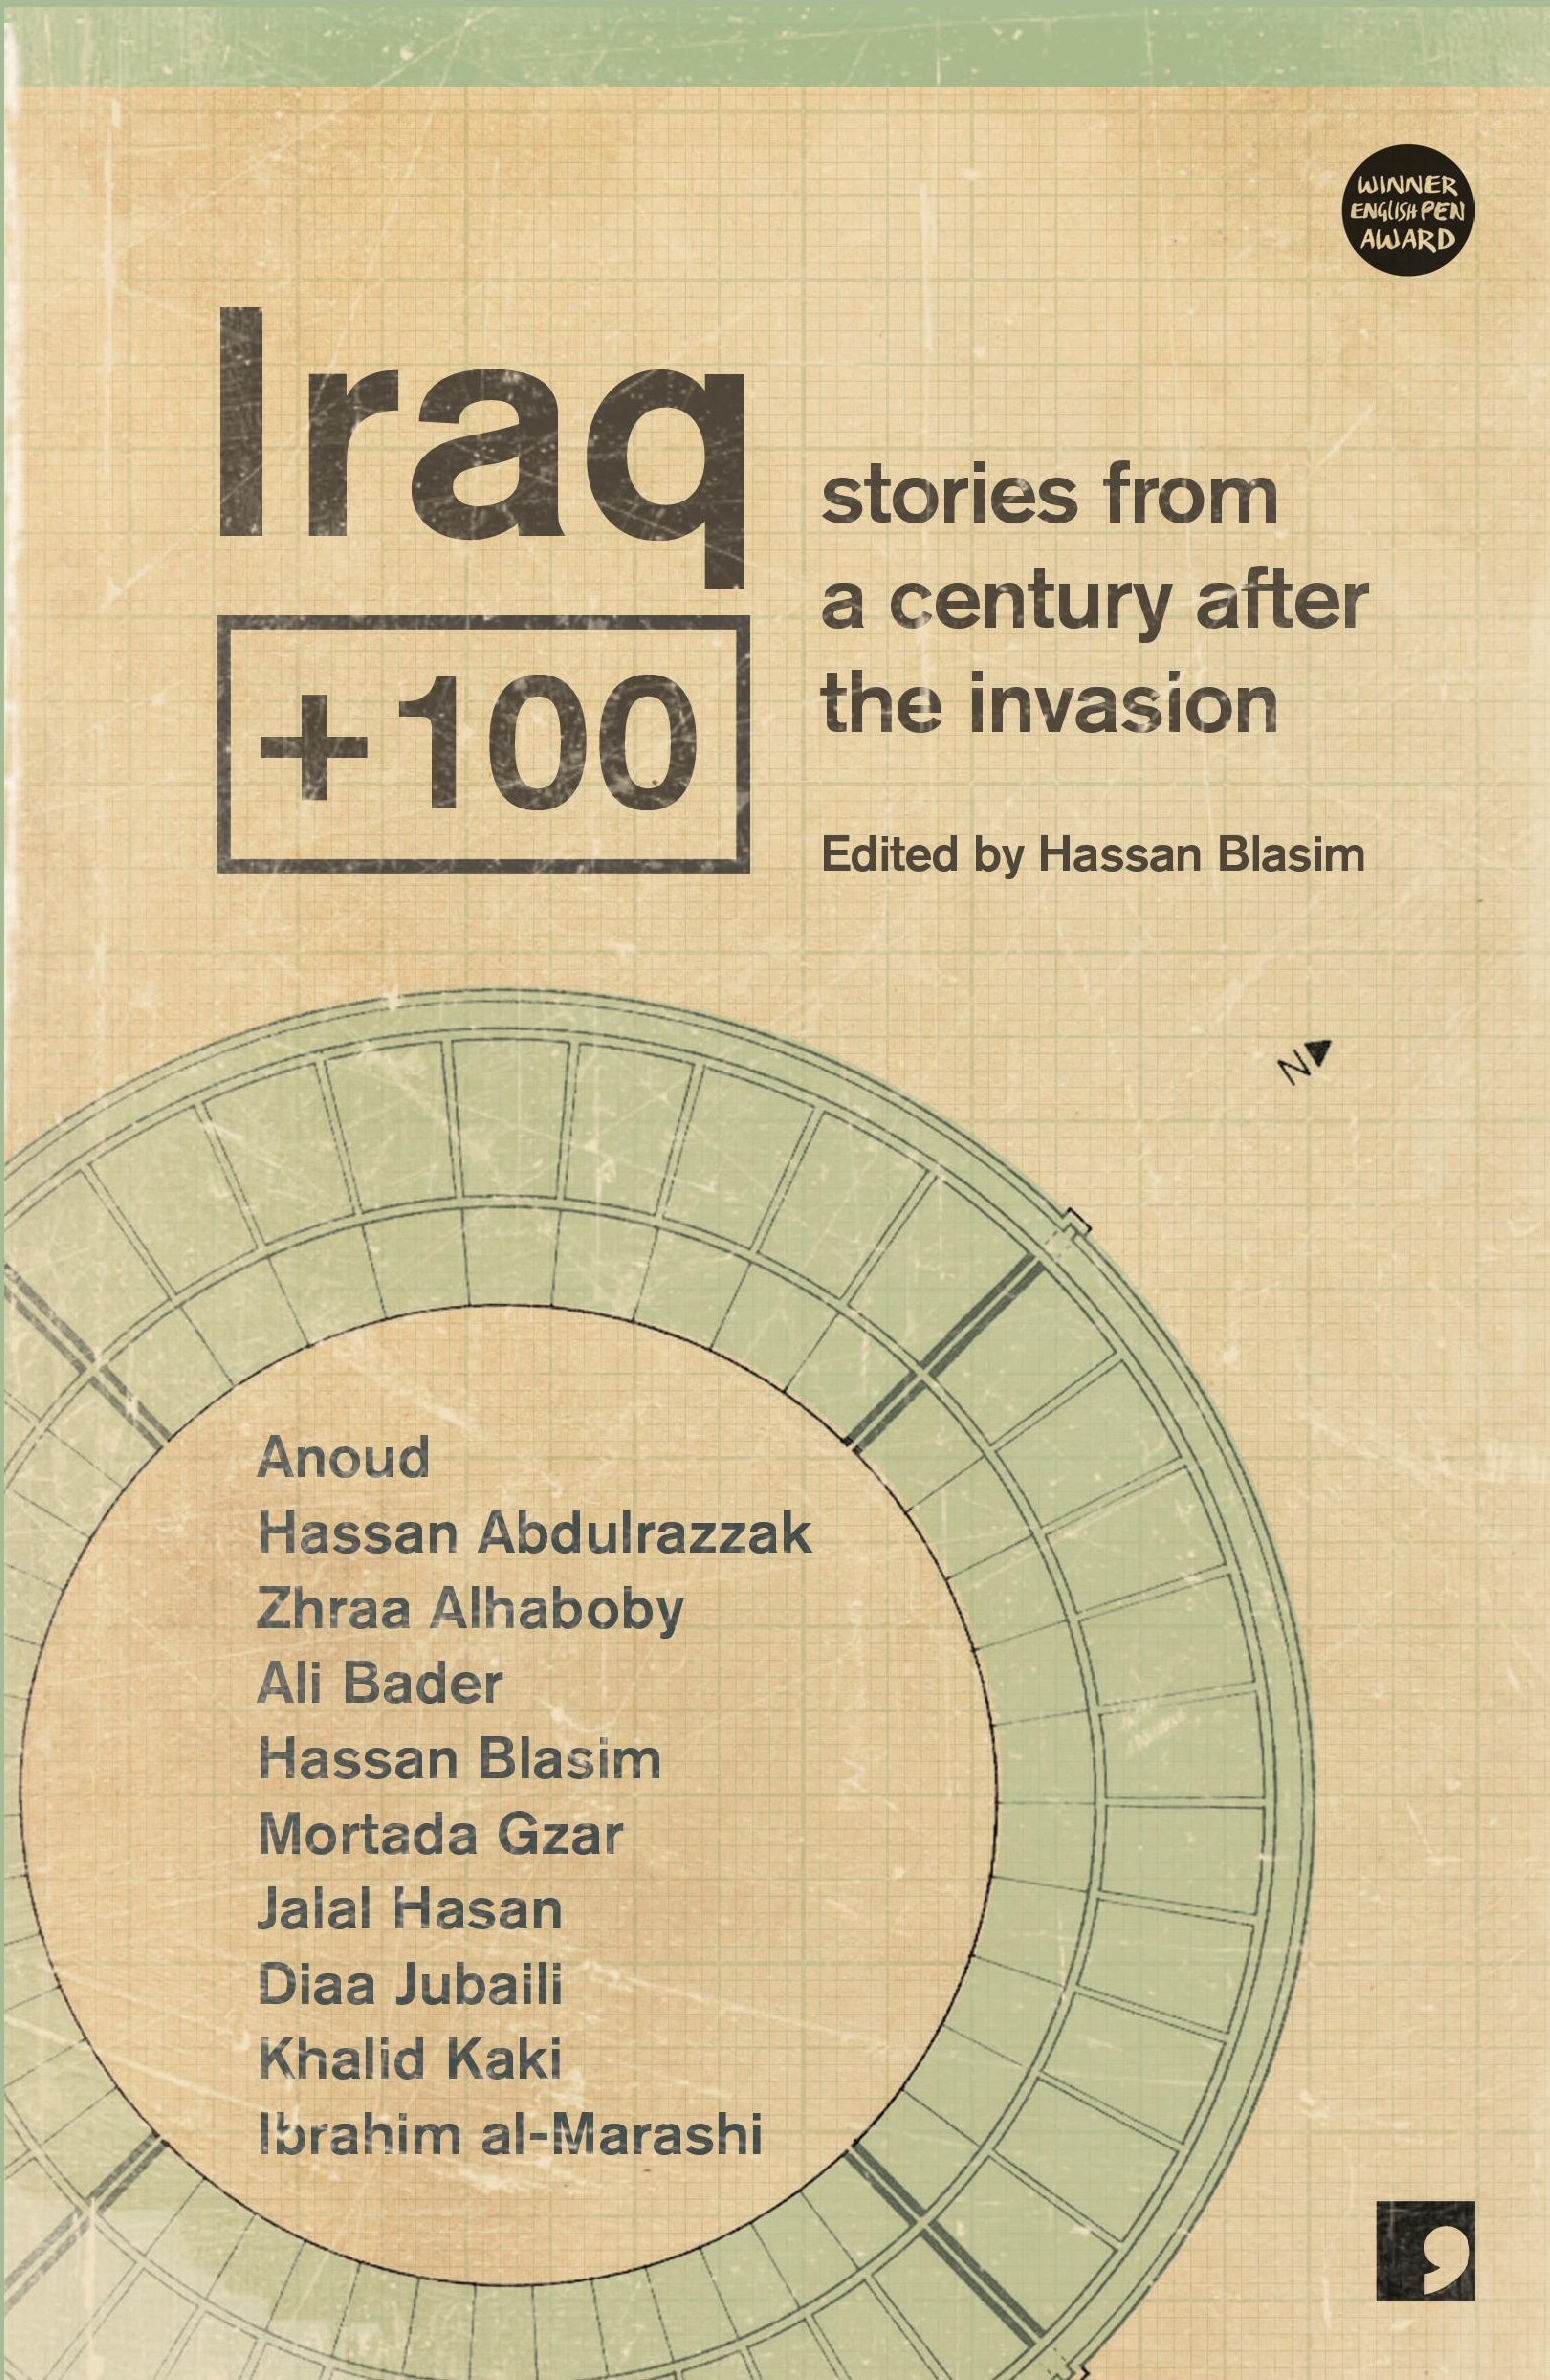 'Iraq + 100' Is Painful, But Don't Look Away